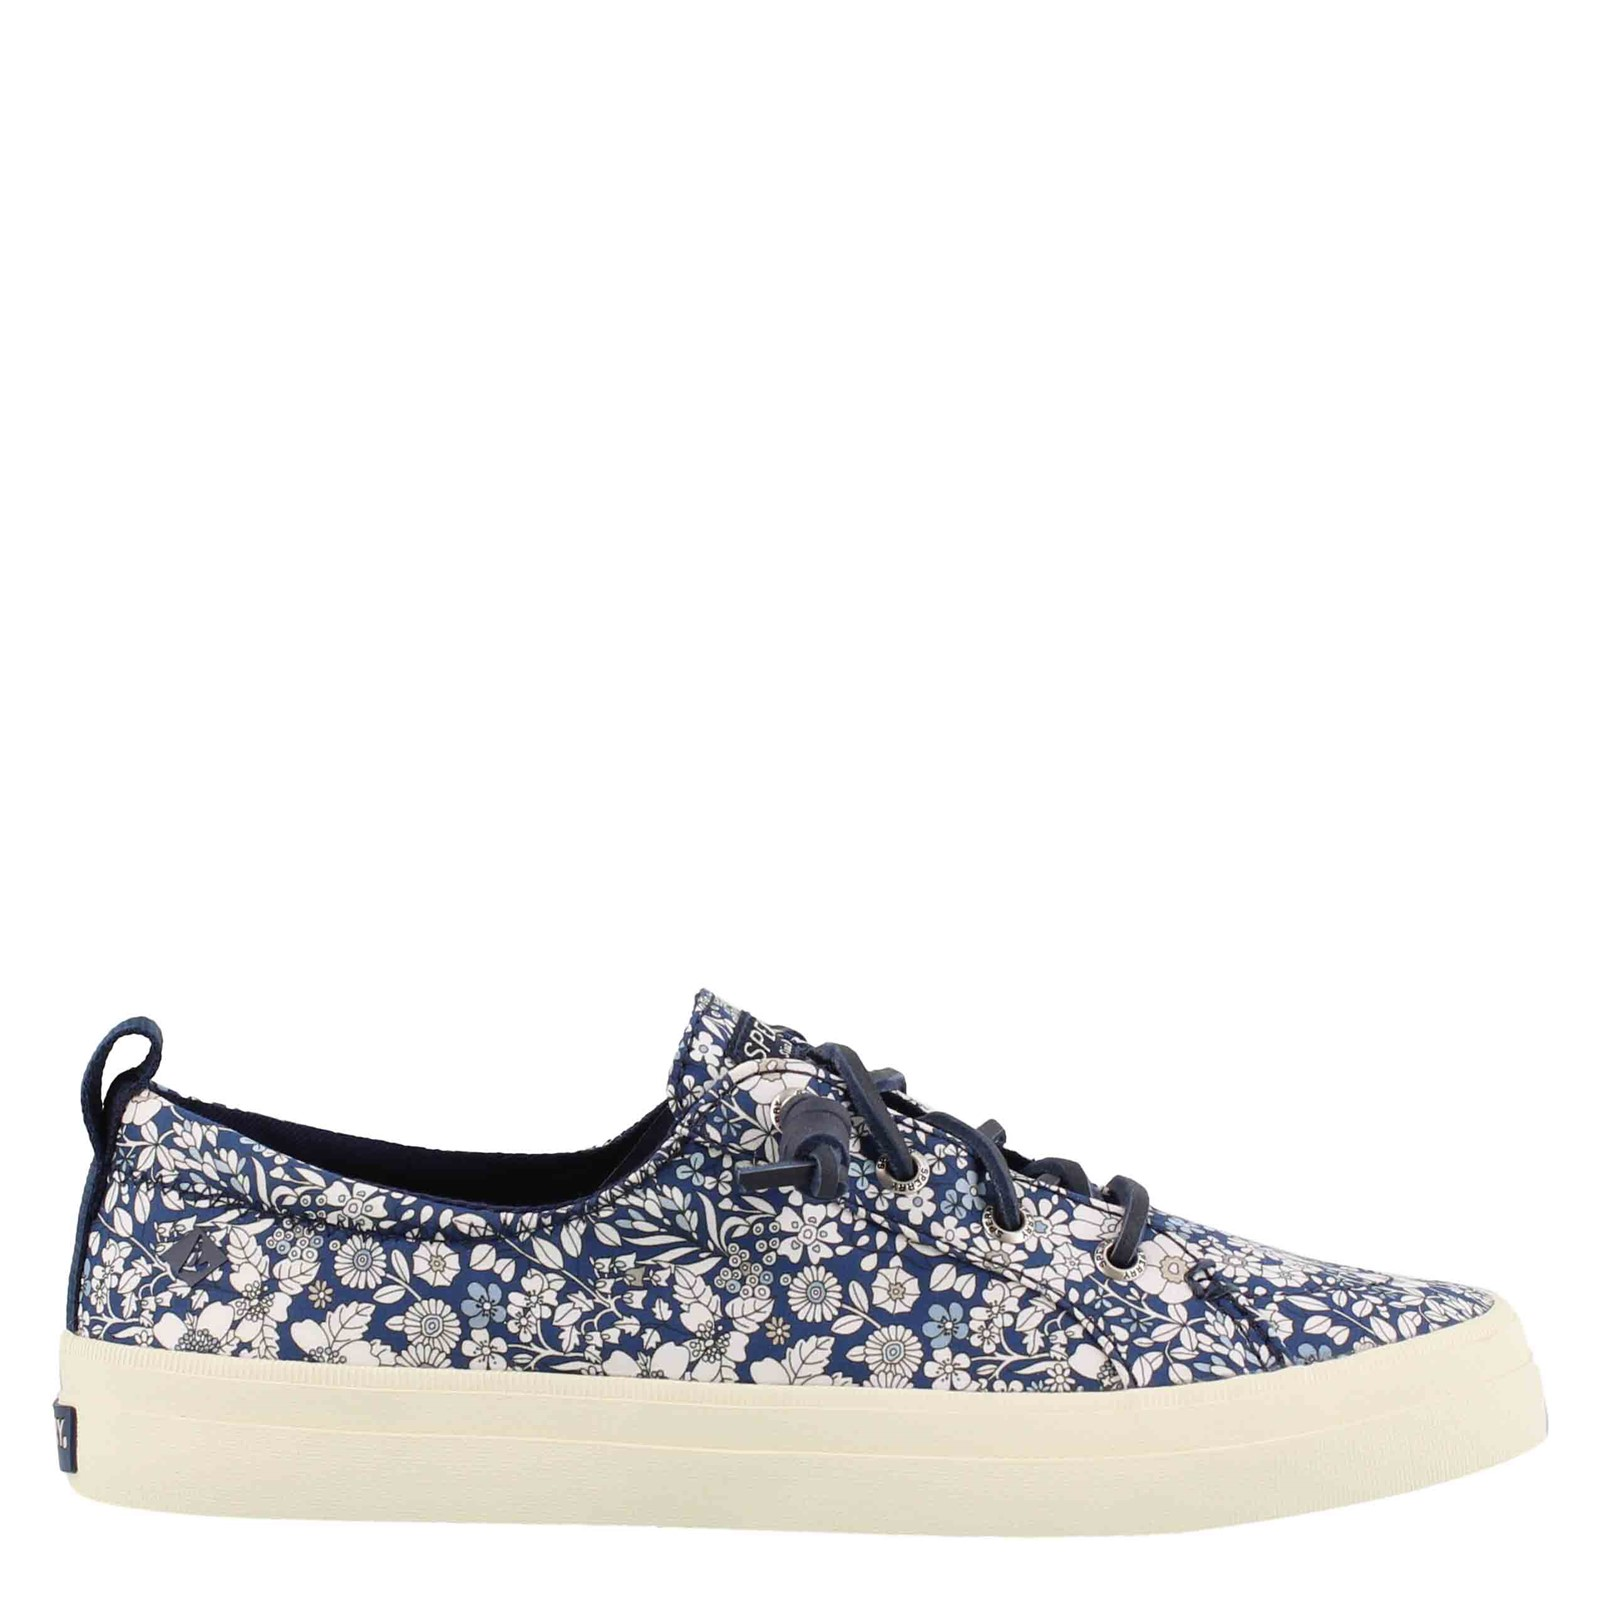 a53c71206bb31 Women's Sperry, Crest Vibe Liberty Floral Sneaker